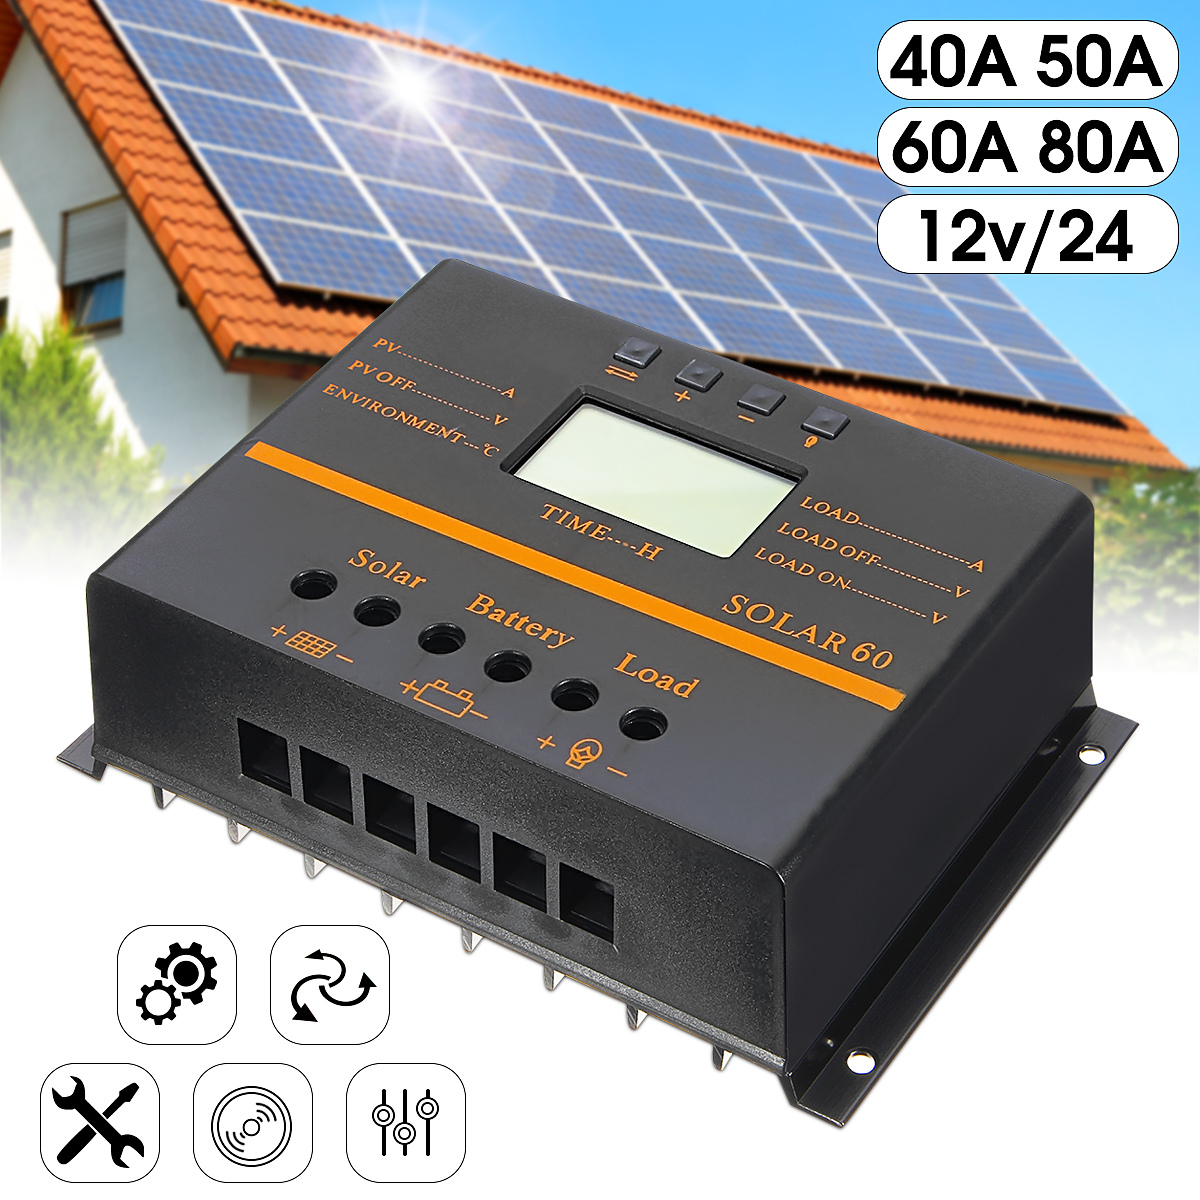 40A/50A/60A/80A Solar Panel Charge Controller Battery 12V/24V Auto LCD Display PWM Regulator USB Overload Protection Automatic